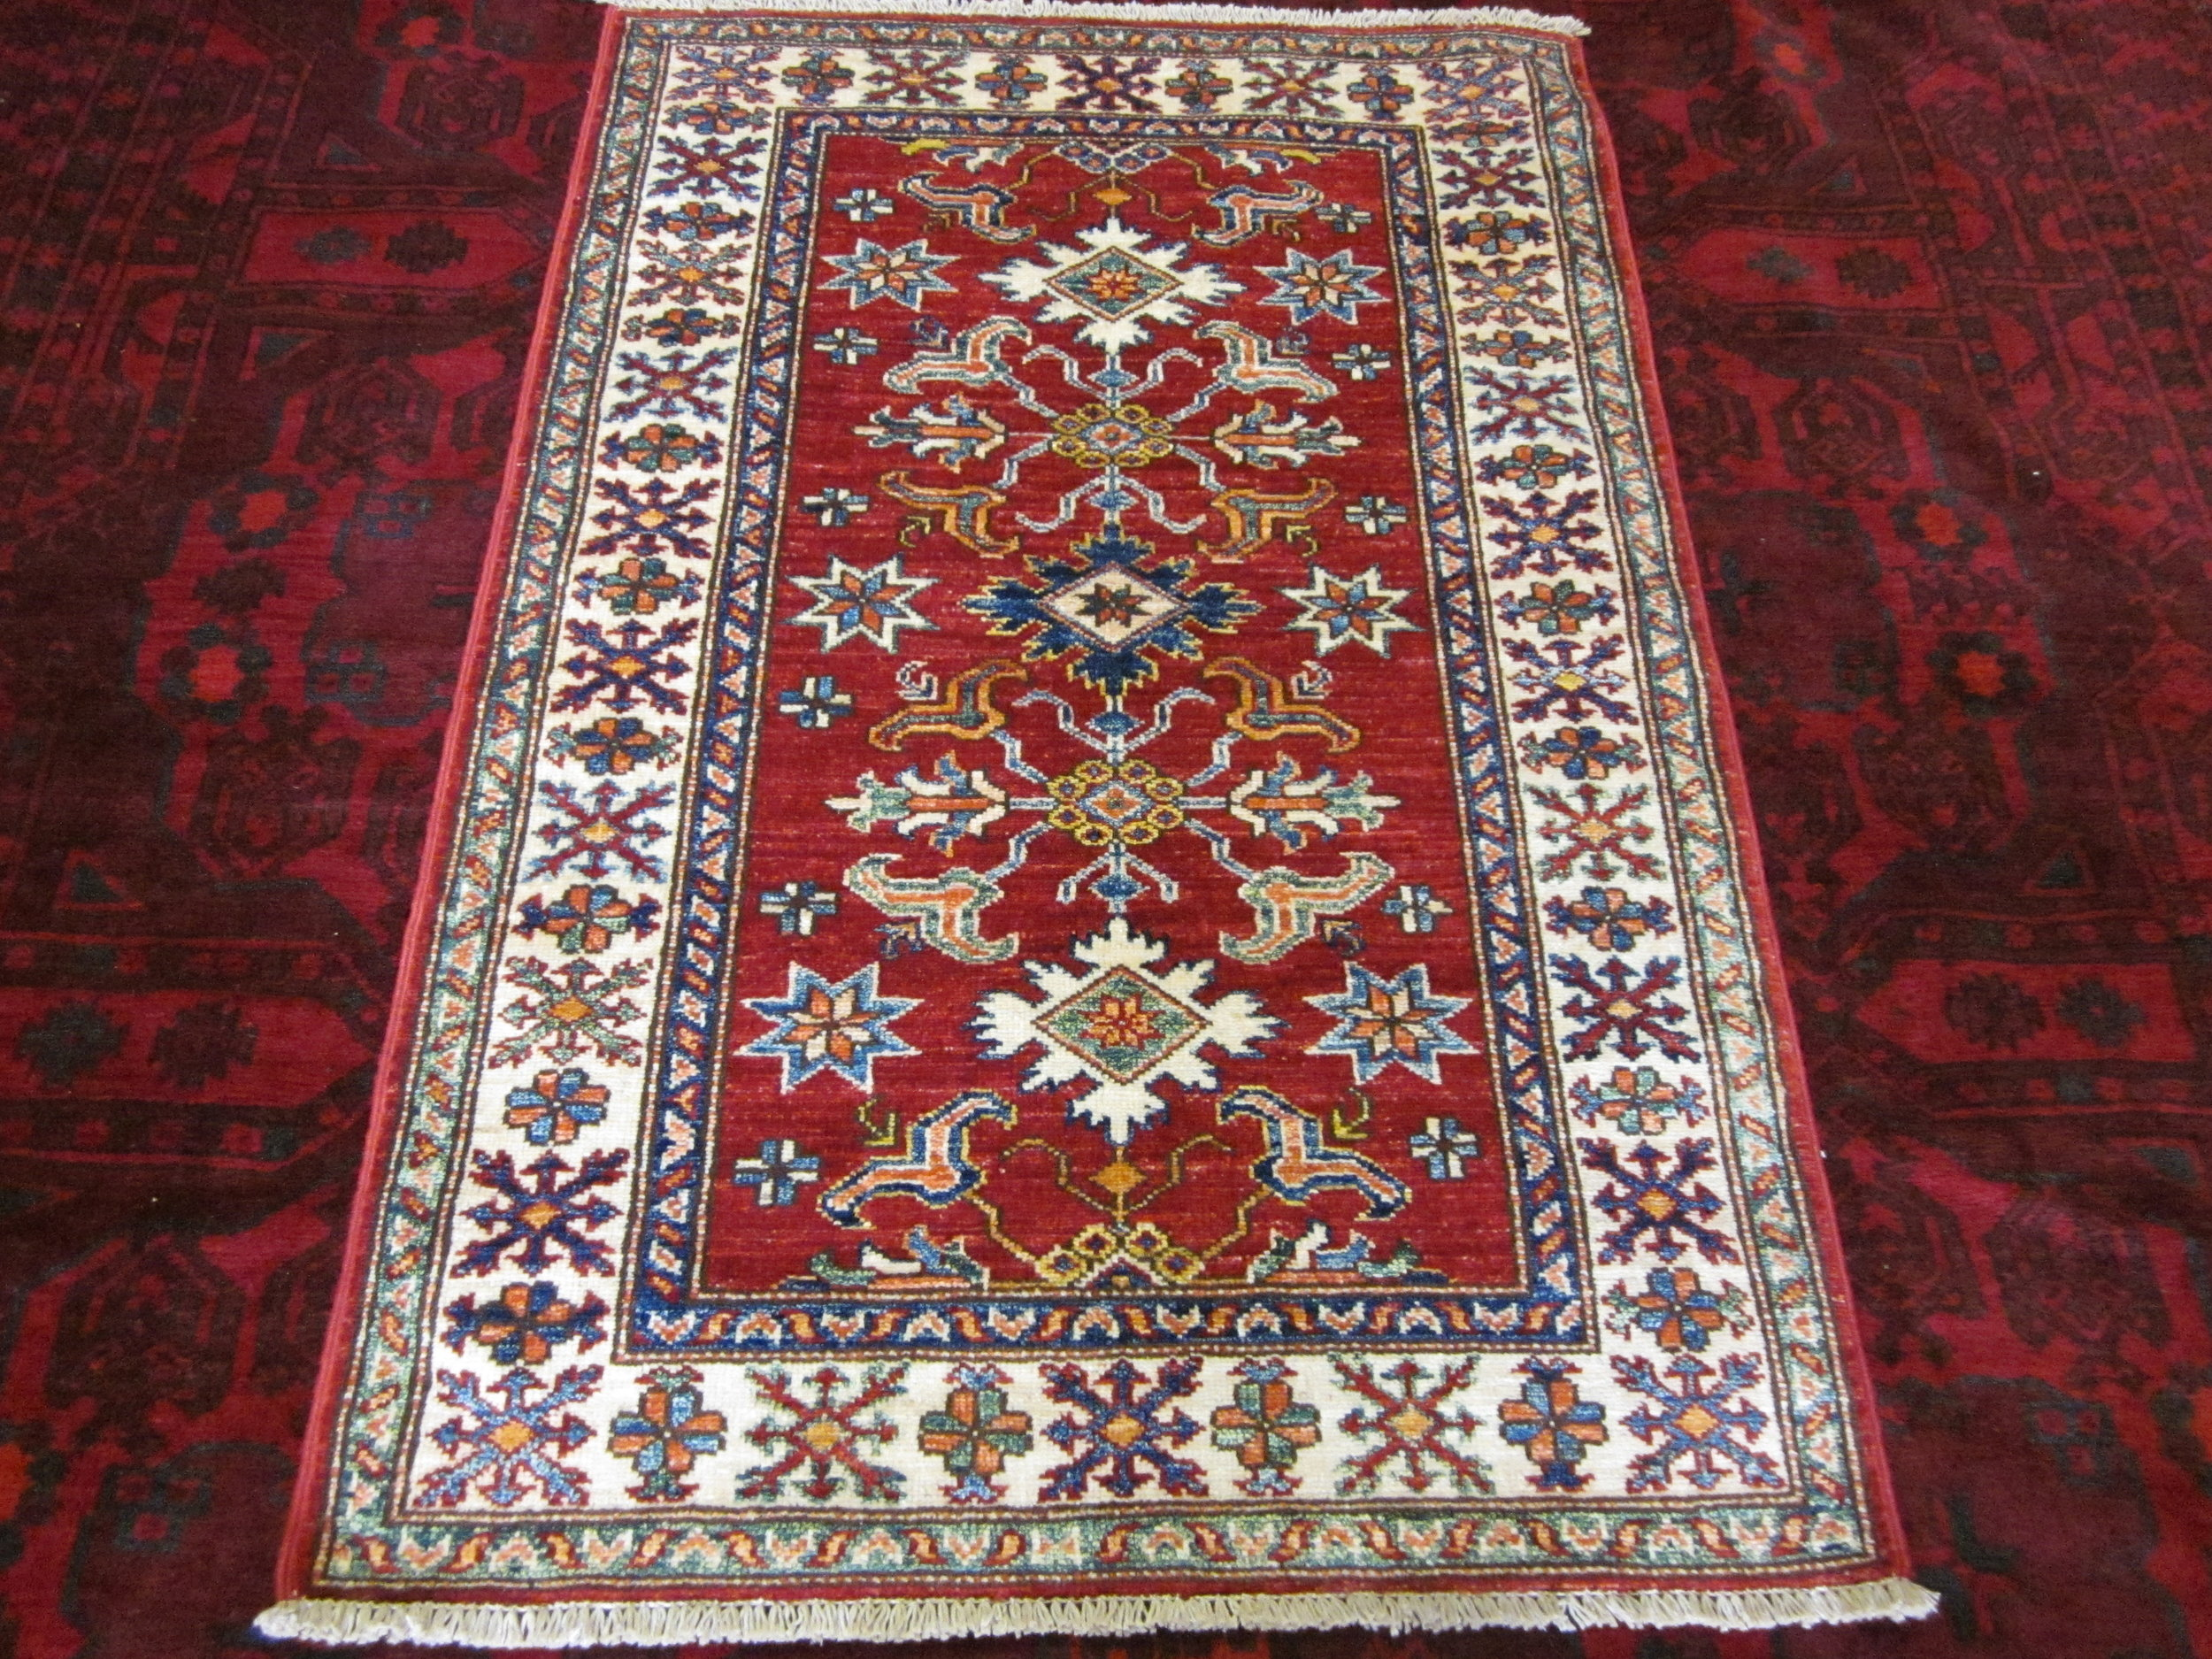 "#46) 2'8"" x 4'1"" Red Kazak rug. Sold."